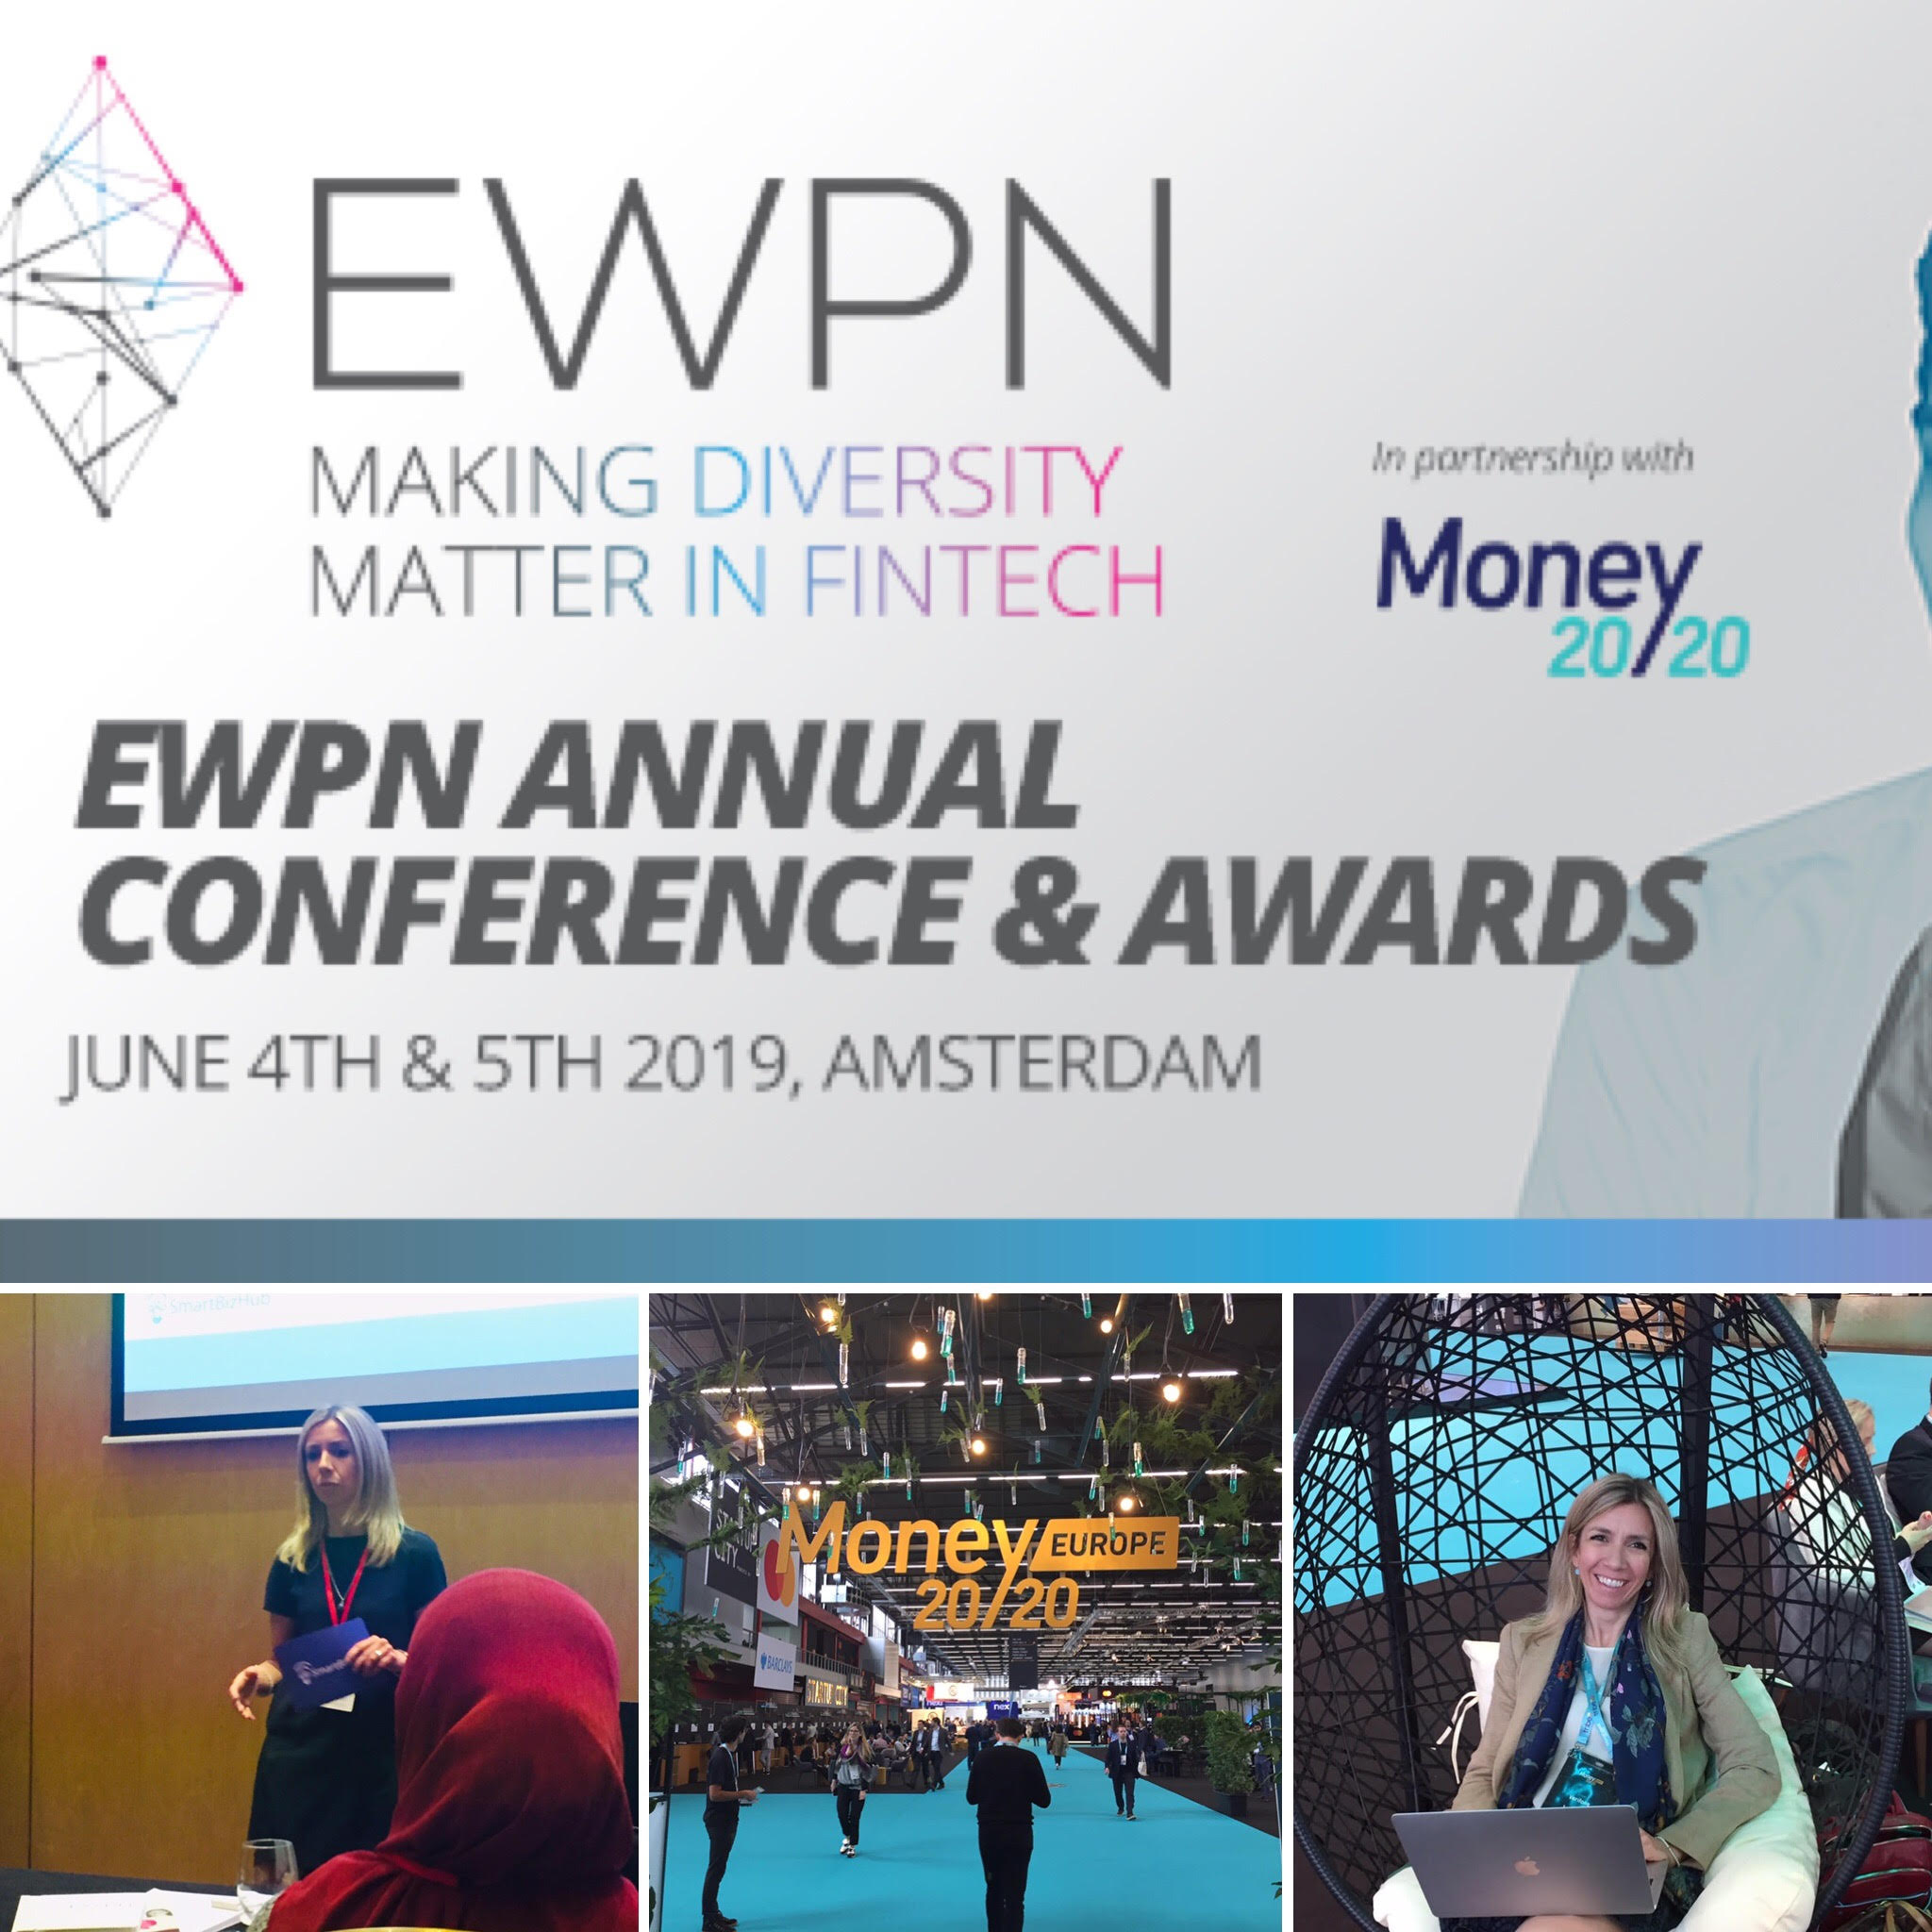 EWPN 2019, AMSTERDAM - Like-minded leaders, successful women and men in FinTech, committed to promoting talented female founders, bridging the gender gap, normalising diversity and inspiring future generations. I spoke about adapting our working culture, shifting its focus and values to reflect a more modern world and diverse society.If we don't, we will still only funnel one particular type of person to the top, and that is not usually a woman, and increasingly not a male role model that many are inspired by. The focus should not be on integrating into not-so-good systems, but on transforming them, promoting new role models to break the cycles of outdated cultures. A correlated, and very important theme discussed was wellbeing, mental and emotional . energy, and recovery for sustainable high performance. We are bridging the gap between knowing and doing, one achievement at a time.Check out the key take-aways and pictures.